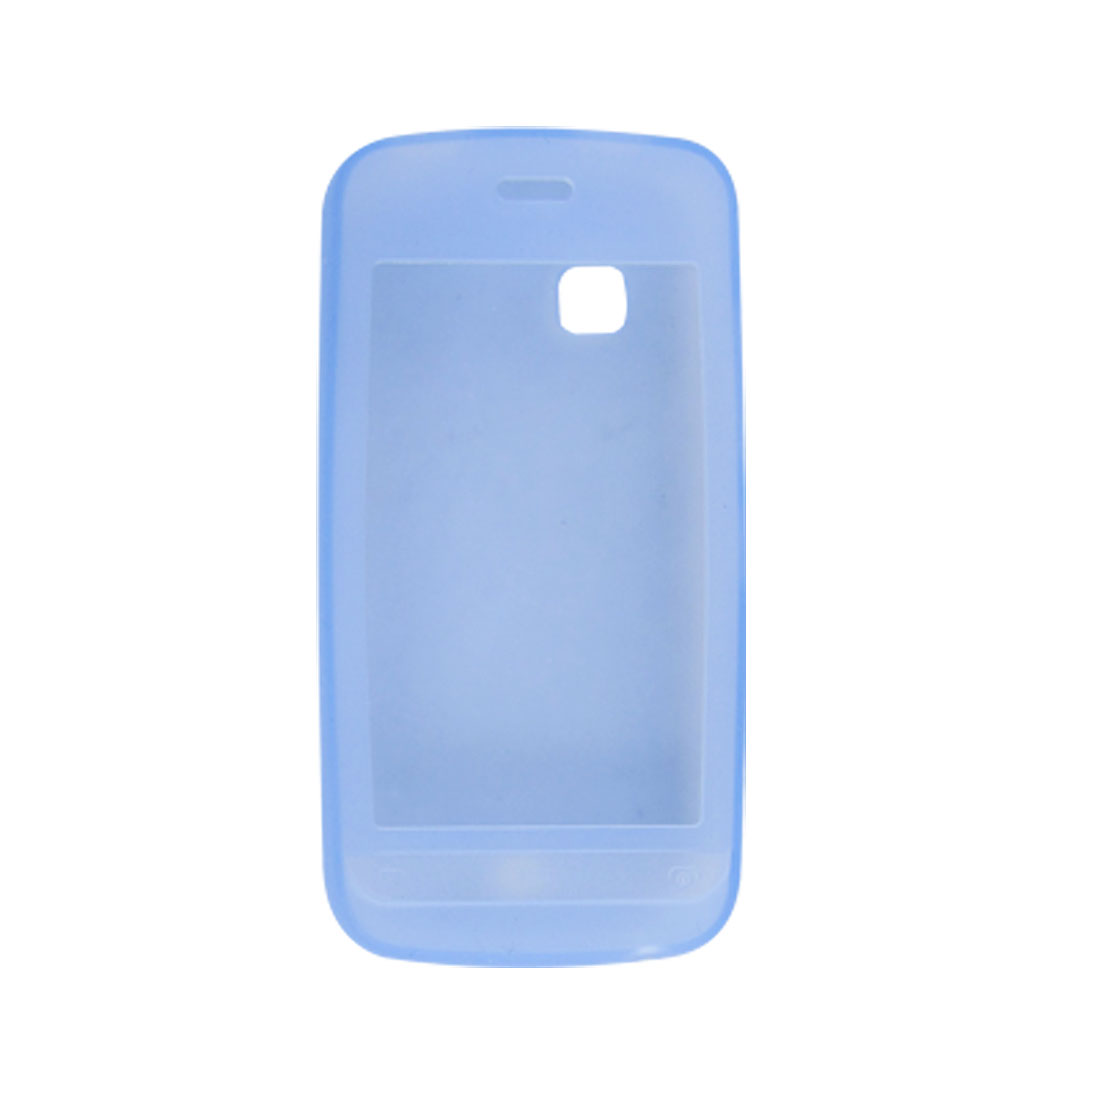 Protective Soft Silicone Blue Cover for Nokia C5-03